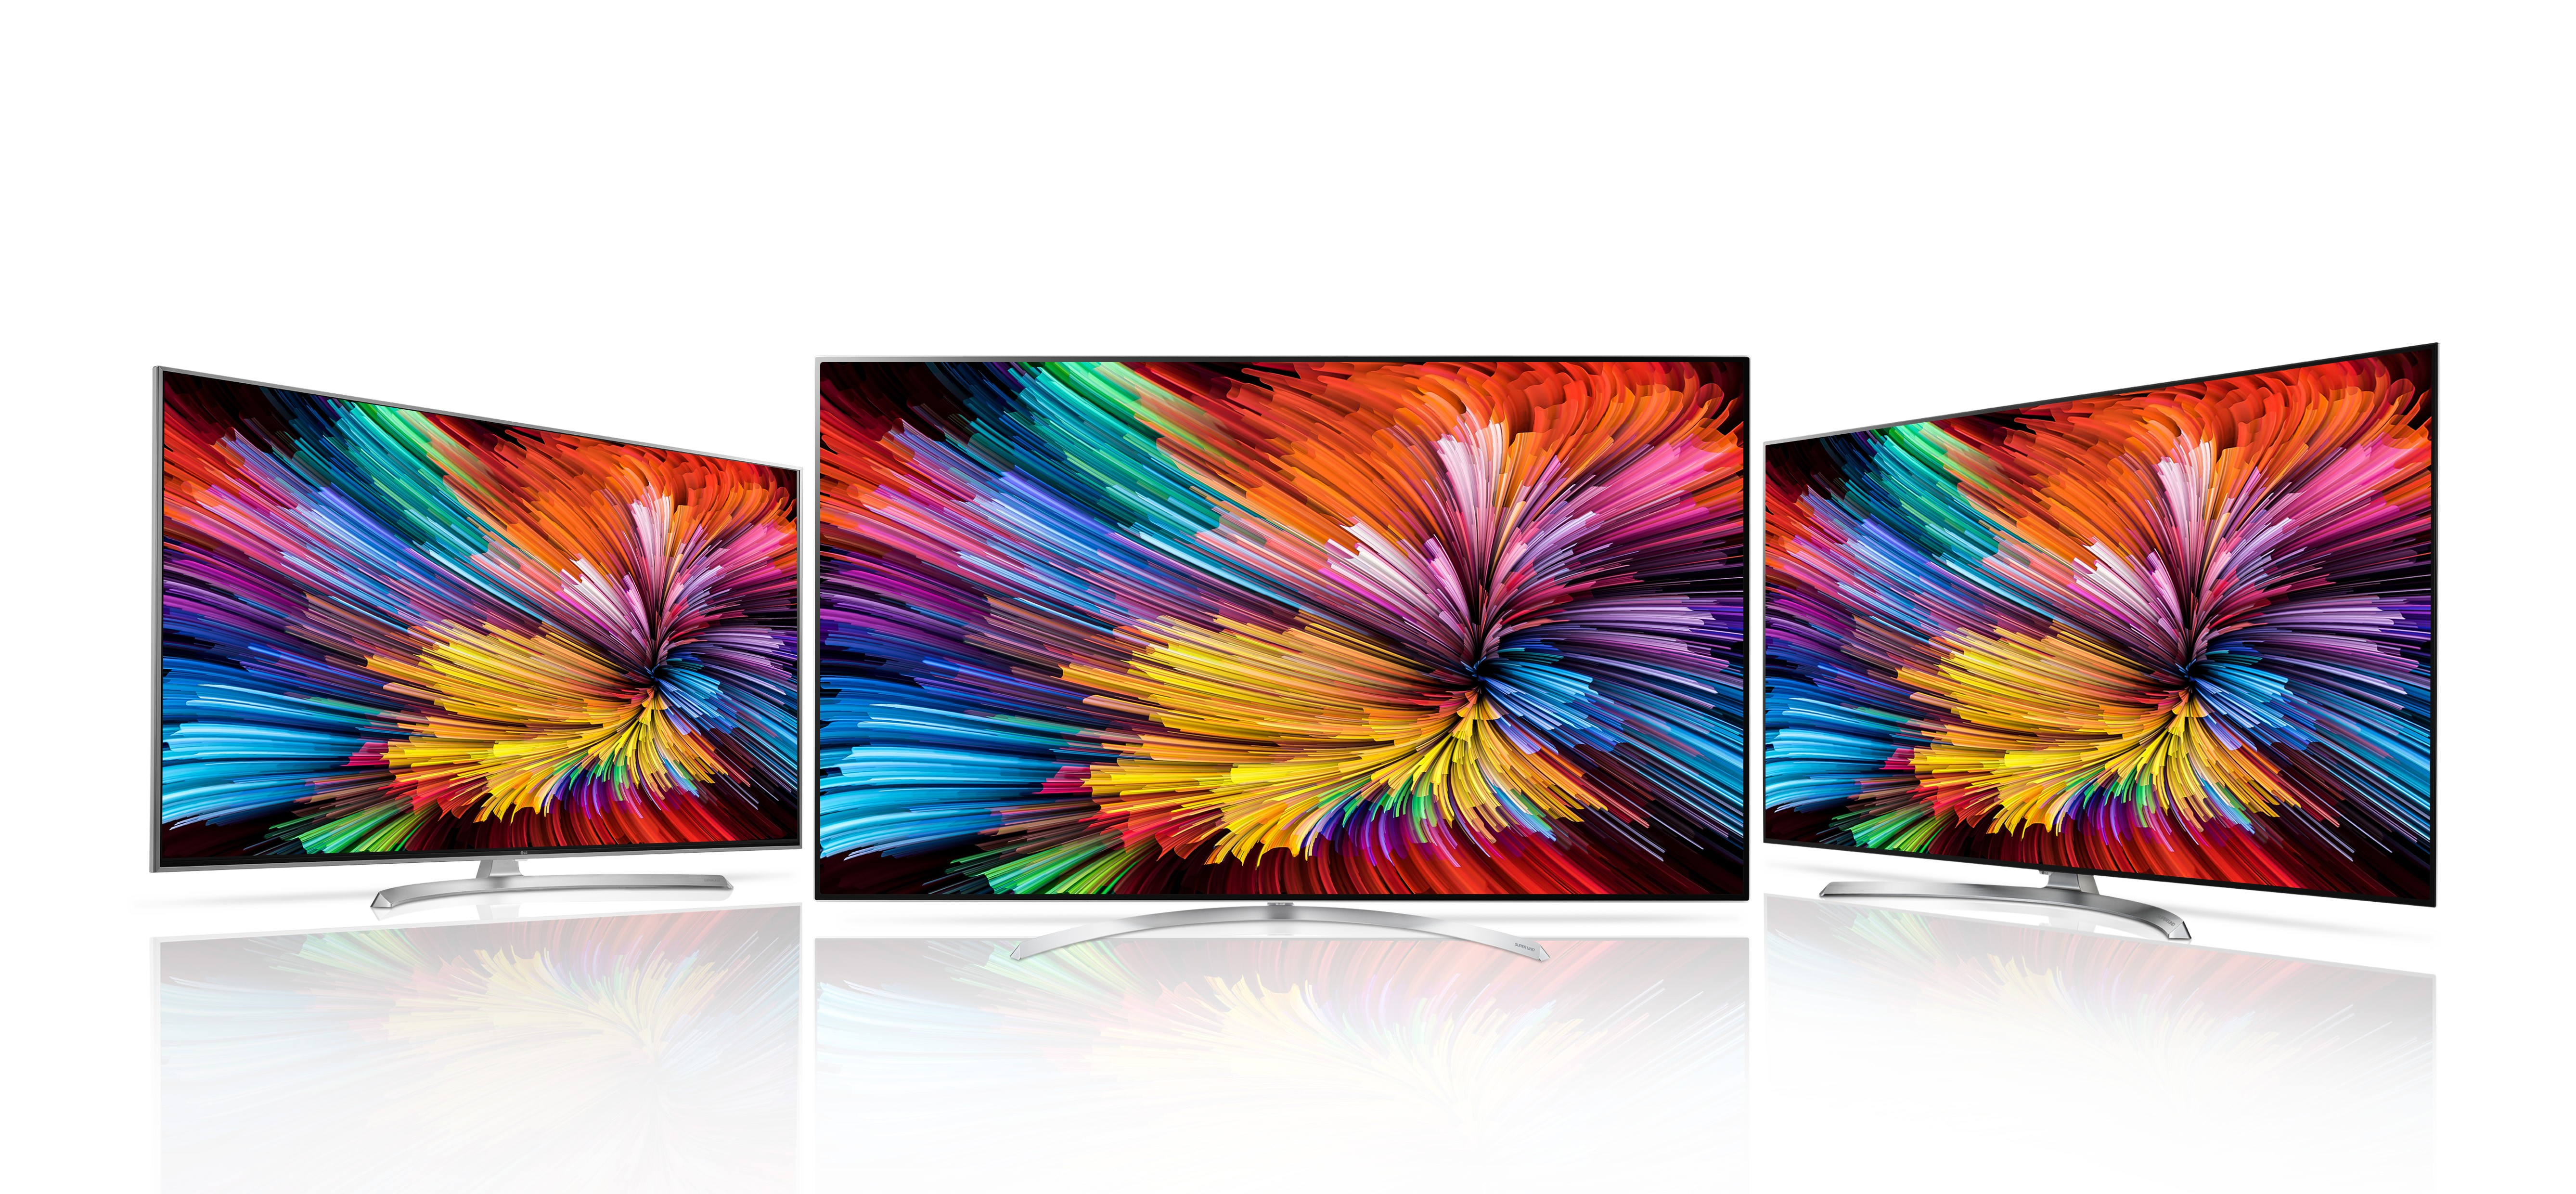 Front view of three LG SUPER UHD TVs (model SJ95), two of them at the flanks are rotated to face the one at the center